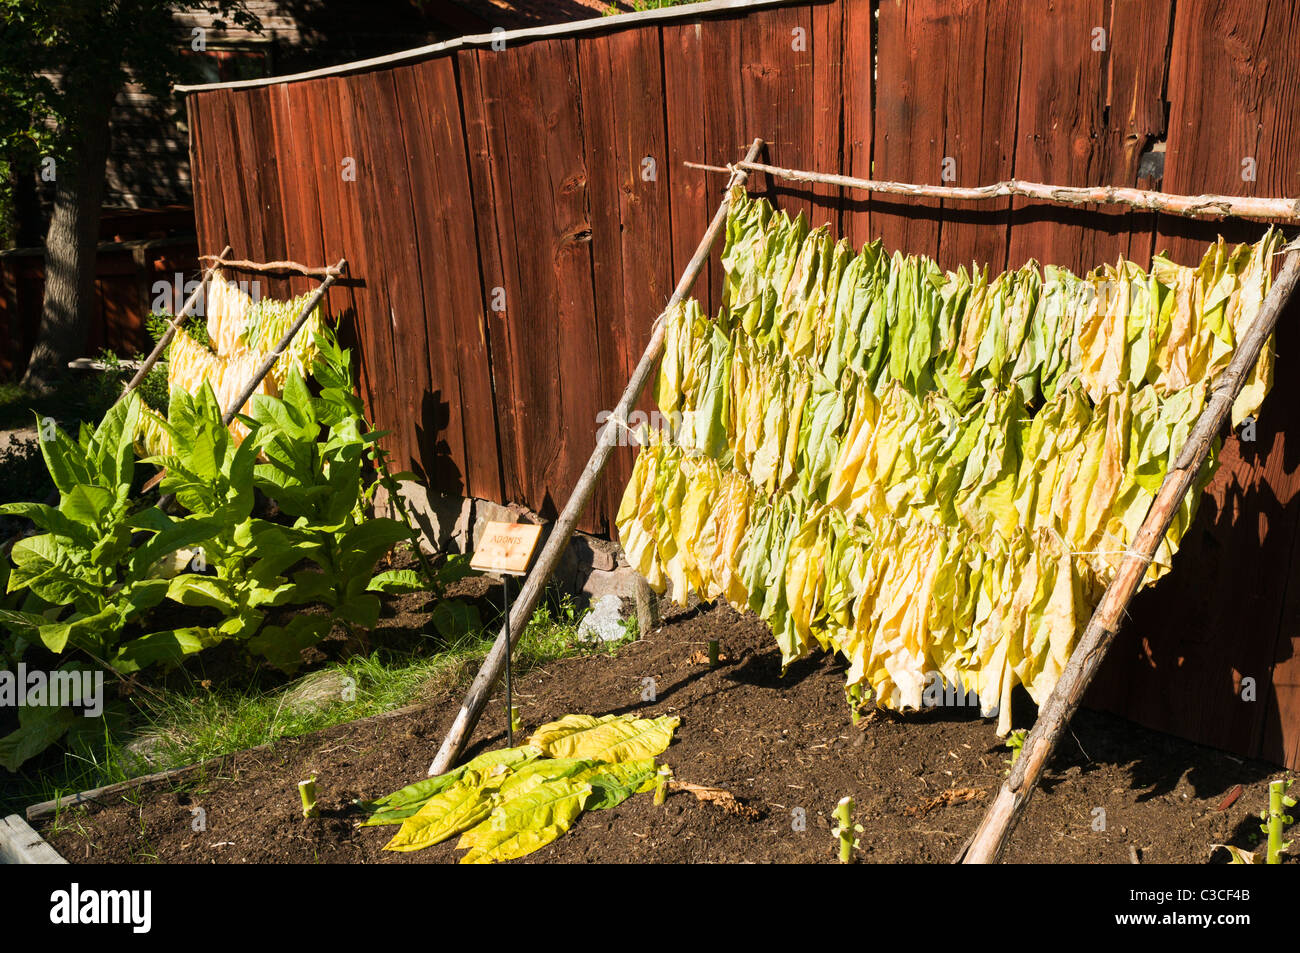 Homegrown tobacco leaves hanging to dry at Skansen open-air museum. - Stock Image